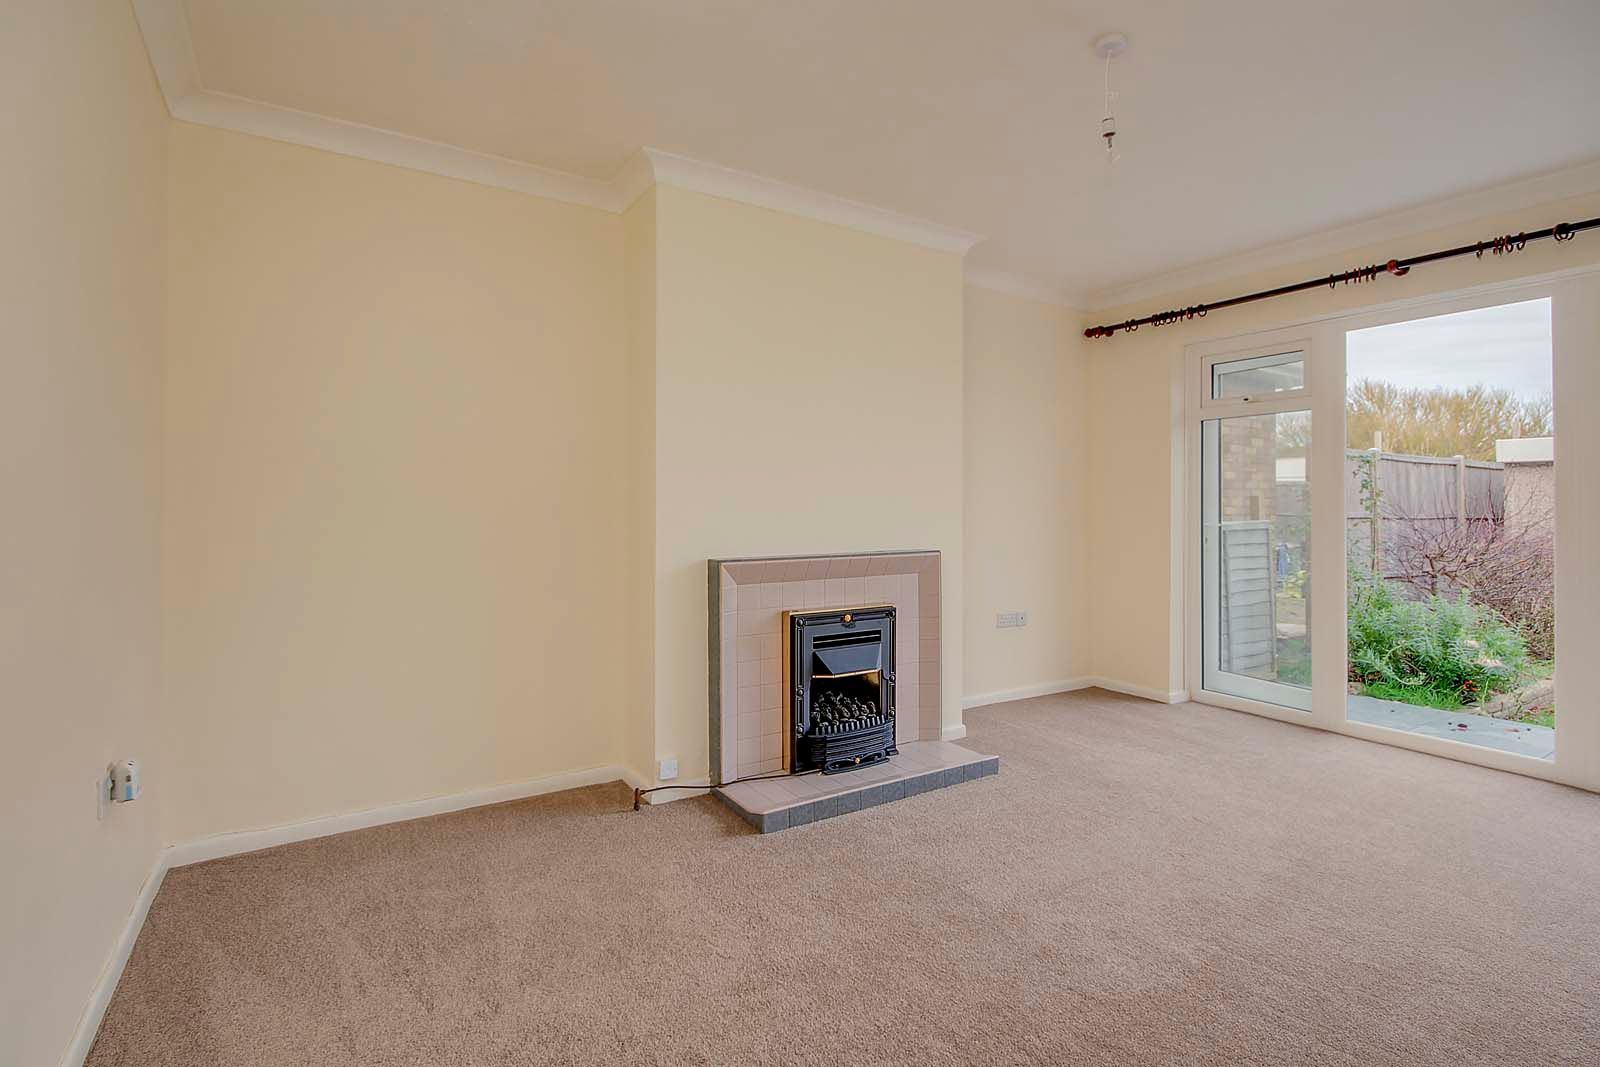 2 bed bungalow for sale in Ashurst Way COMP July 2019  - Property Image 2